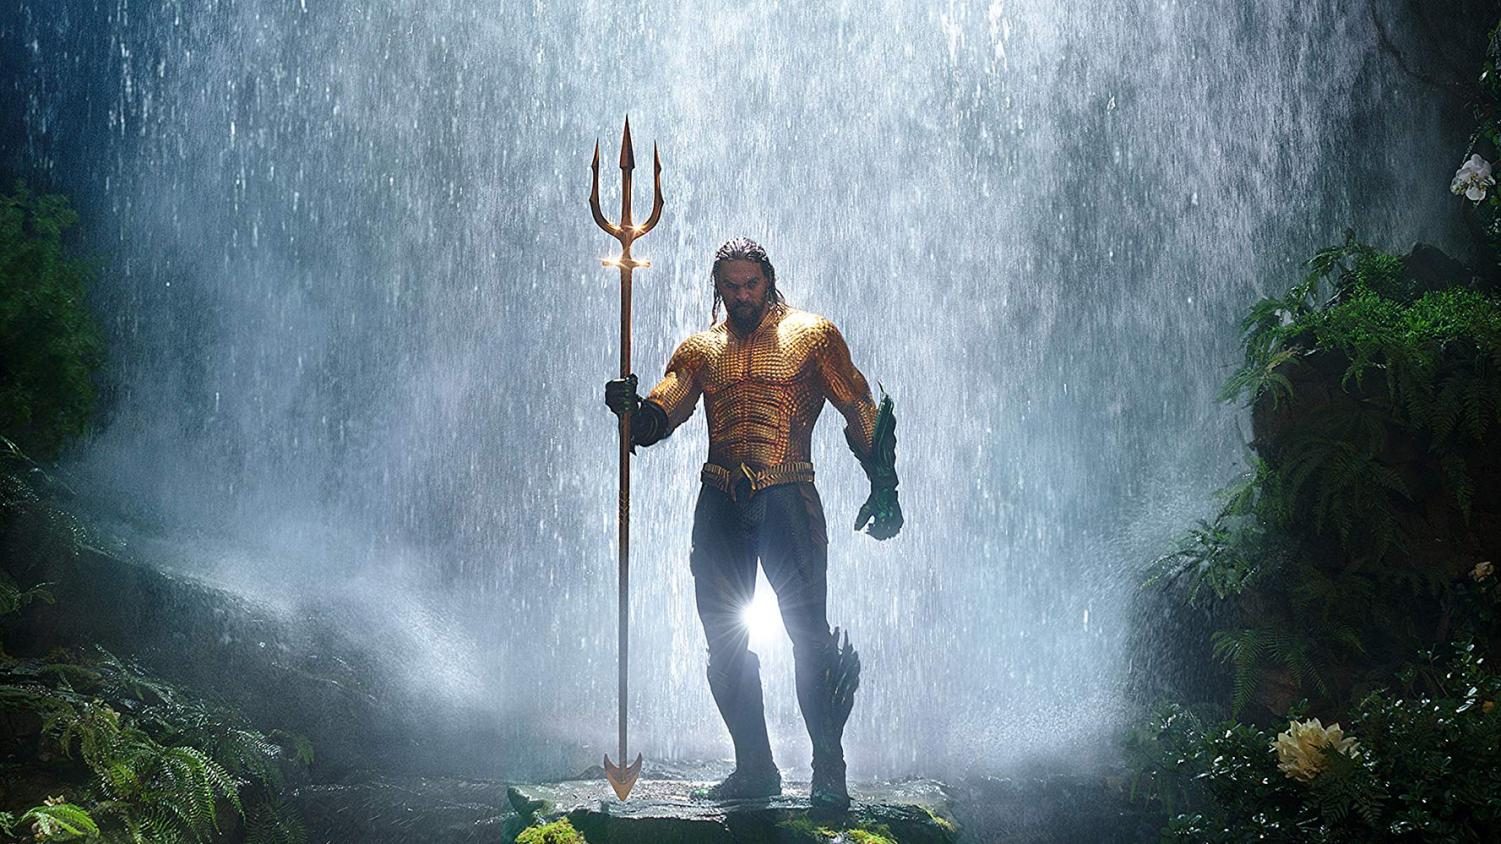 Jason Momoa as the DC hero Aquaman. Warner Bros.